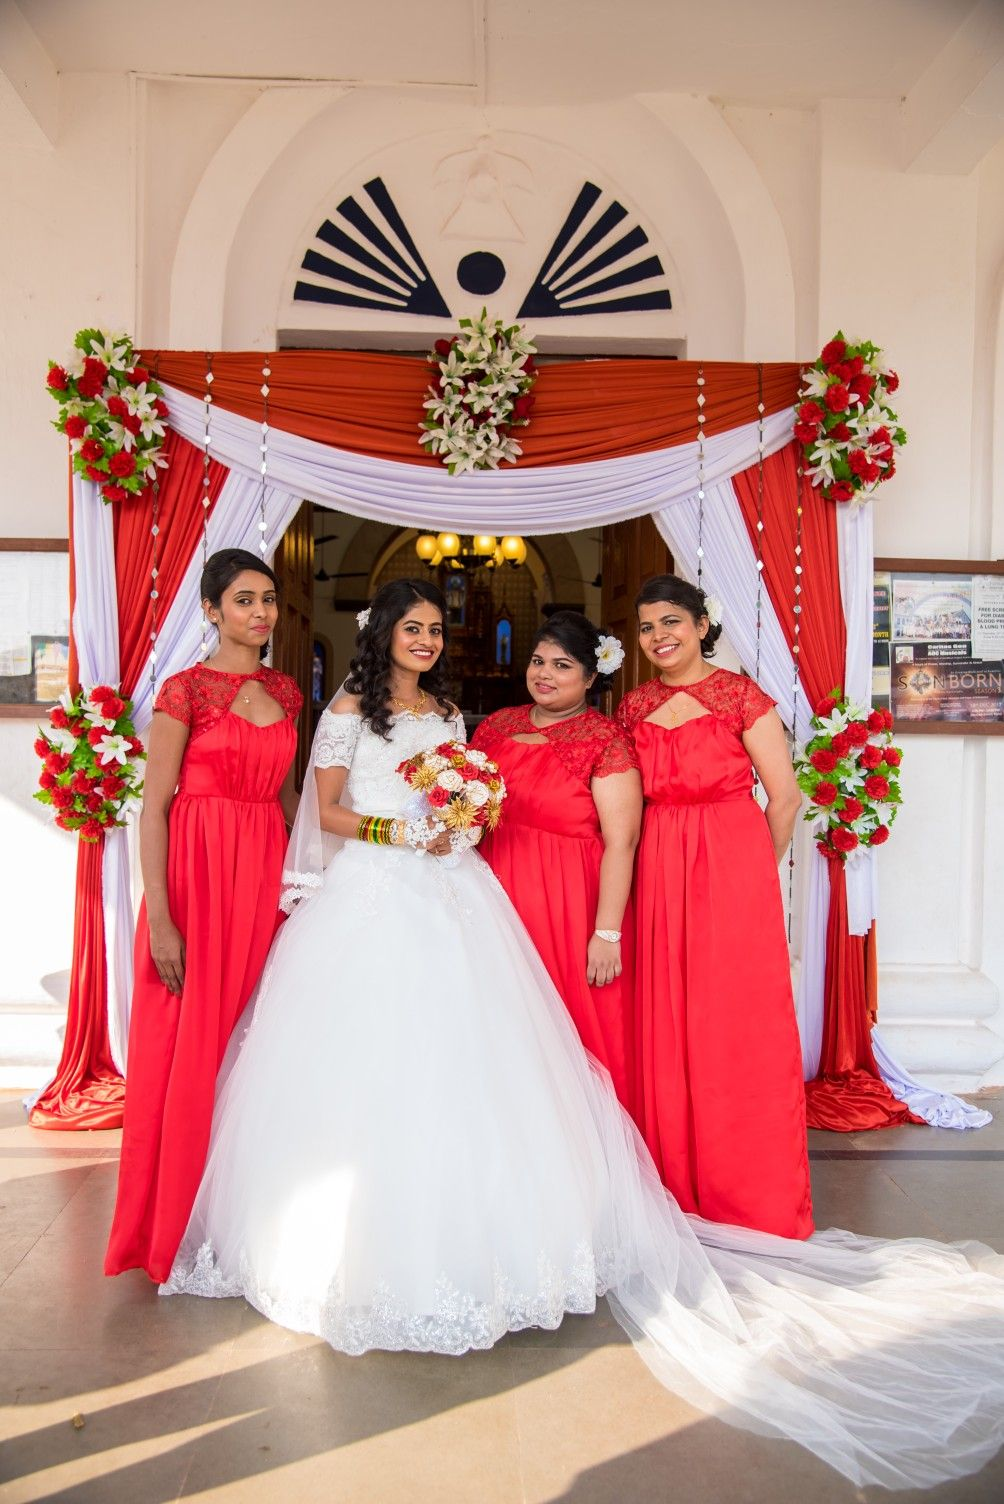 Christmas Theme Wedding Red And White Bride And Bridesmaids Red